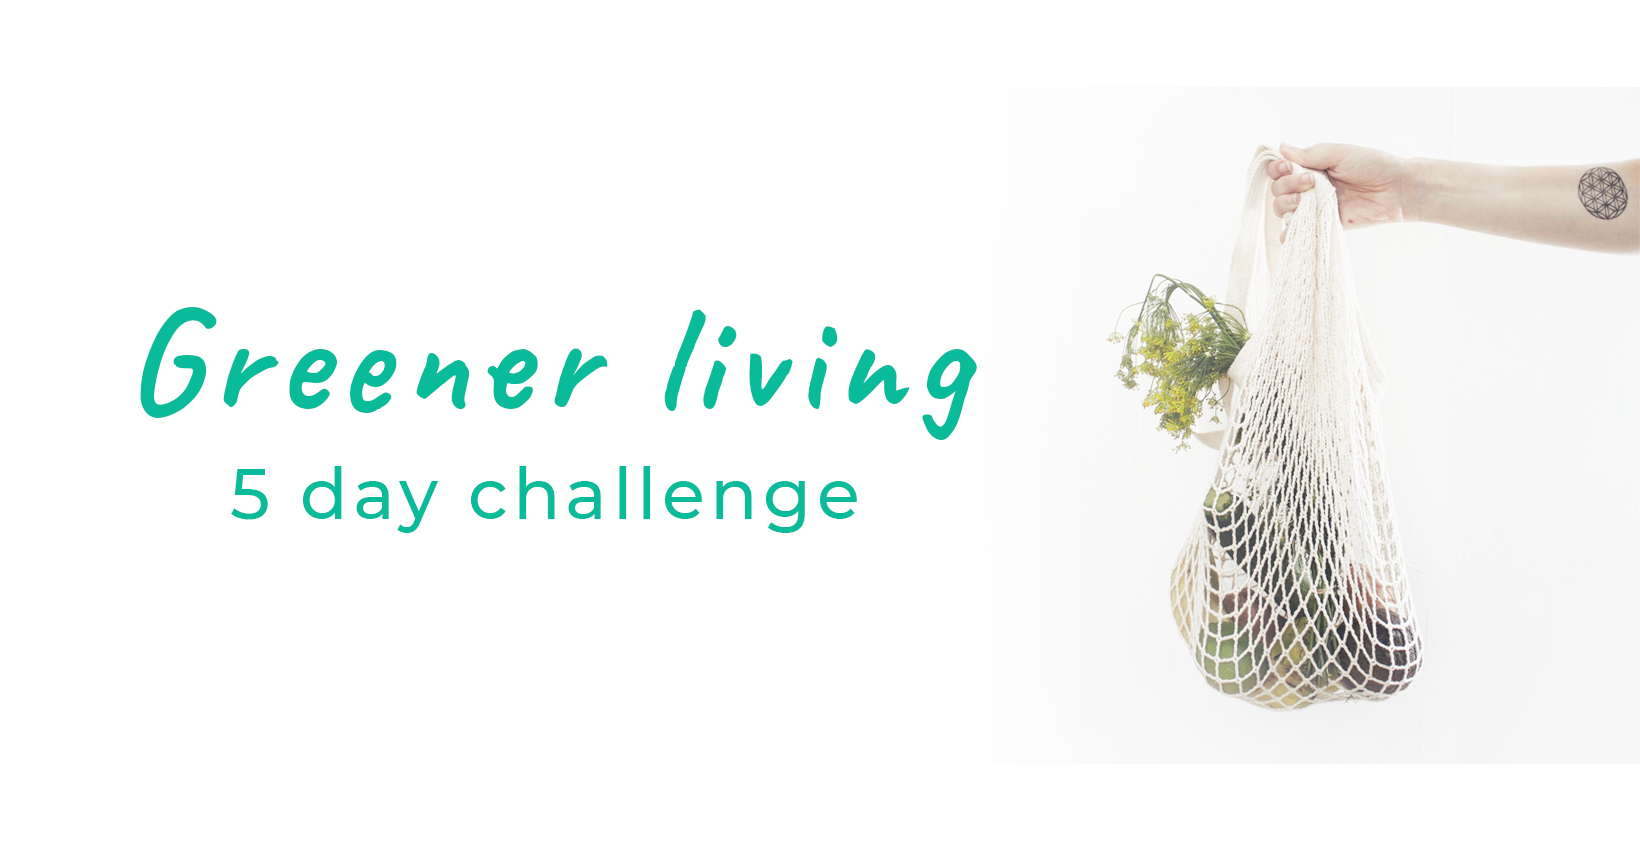 Greener living 5 day challenge